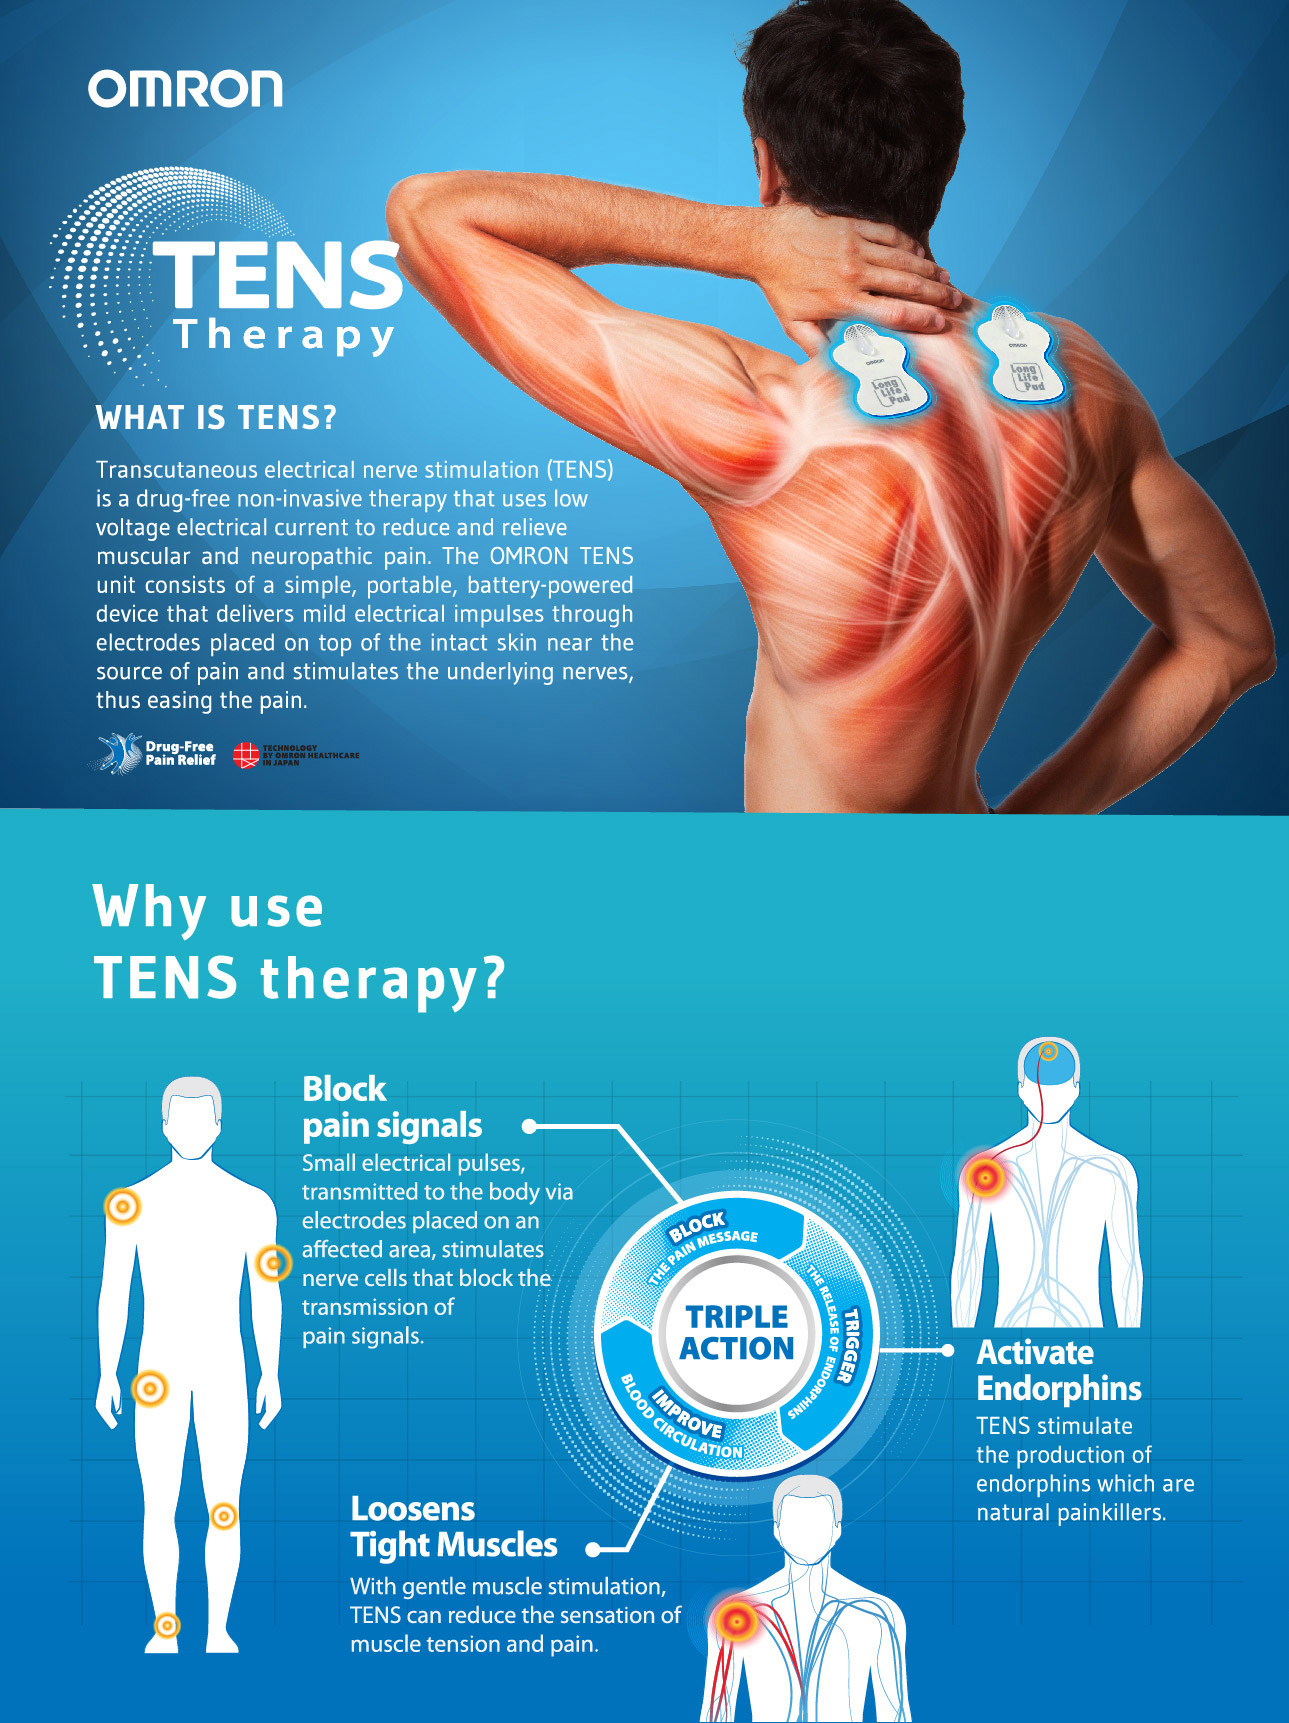 What is TENS?